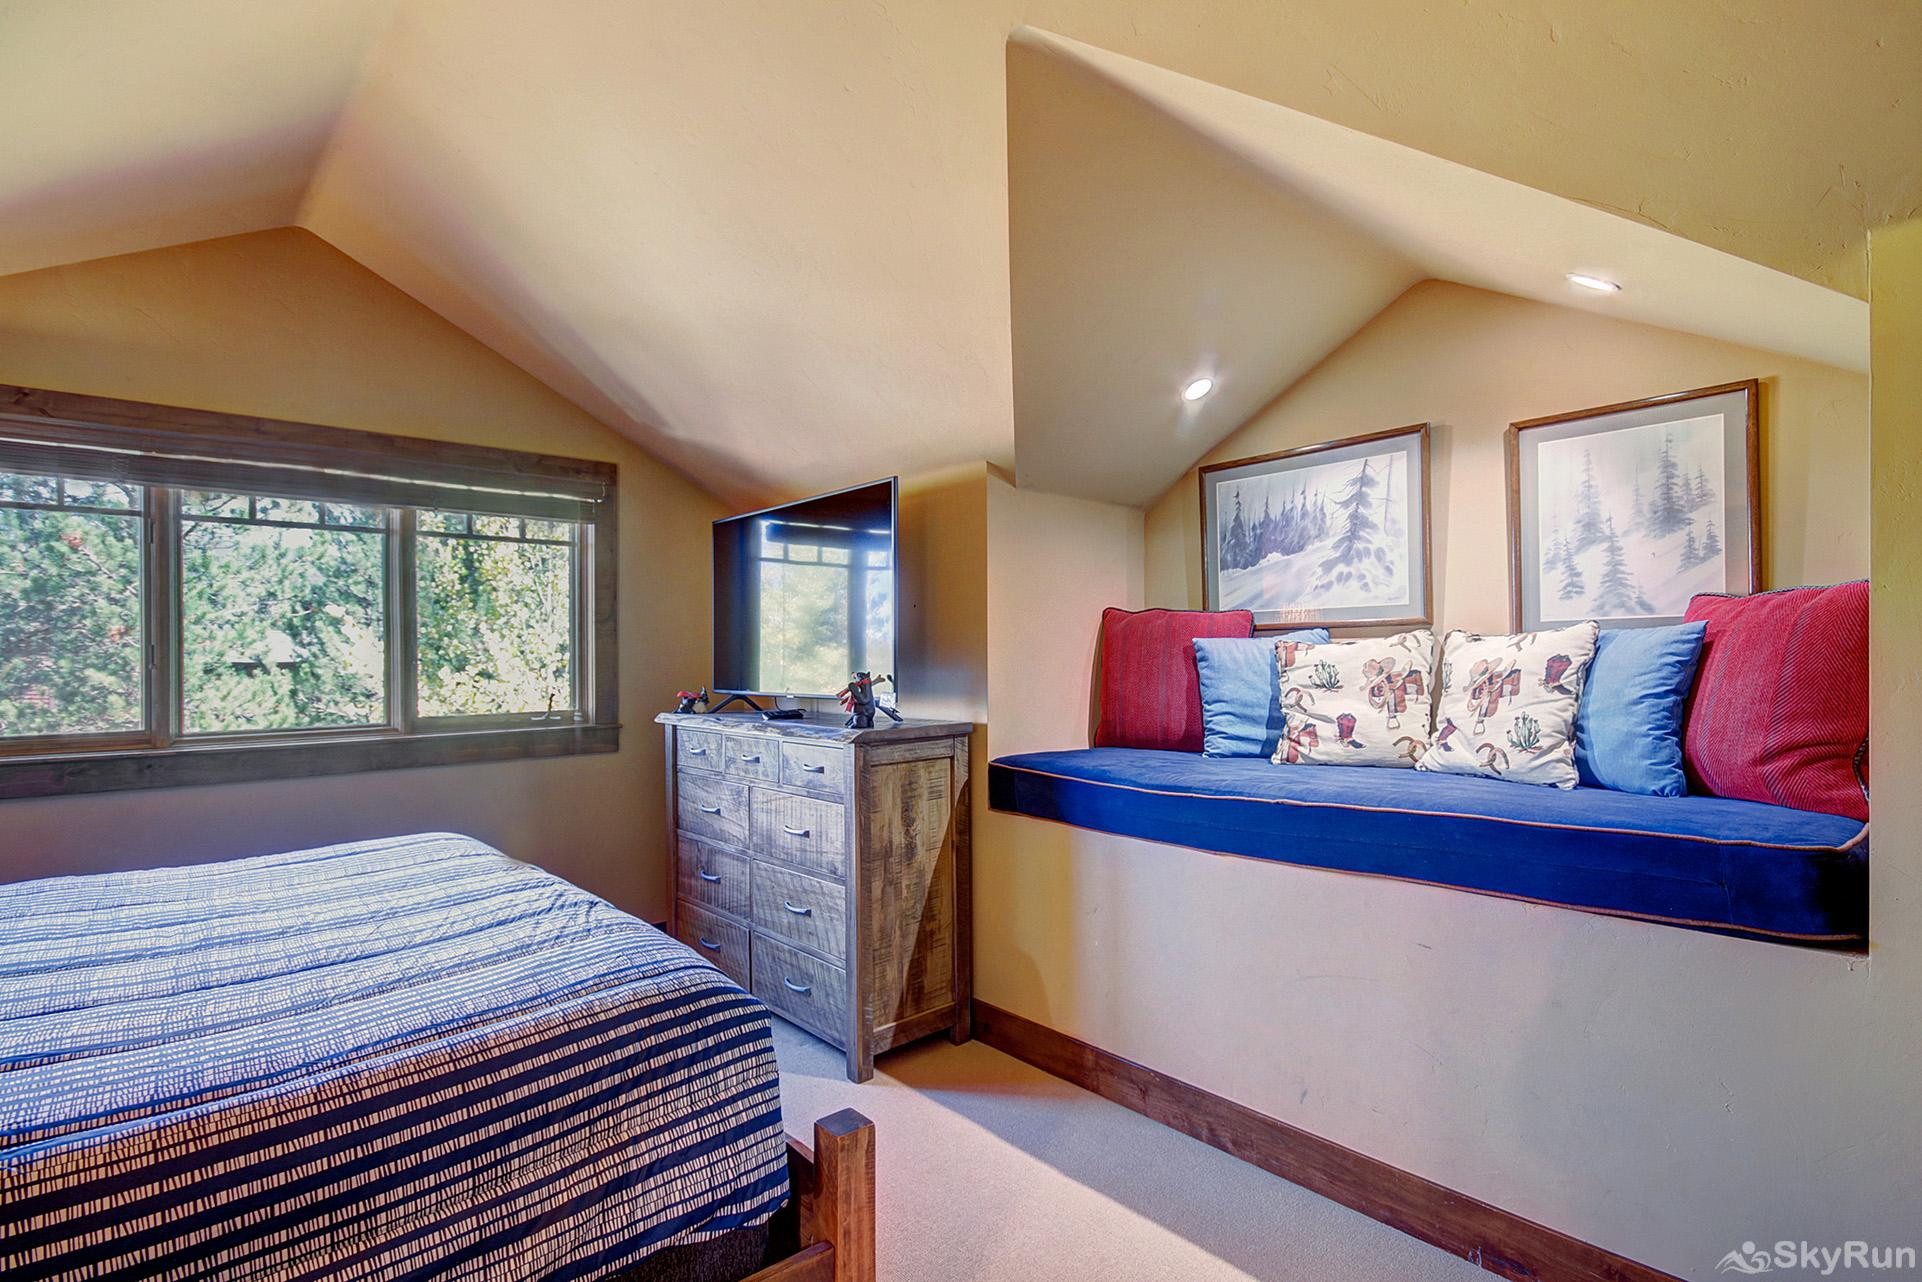 Marksberry Lodge Upper level king bedroom with flat screen TV, ensuite bath